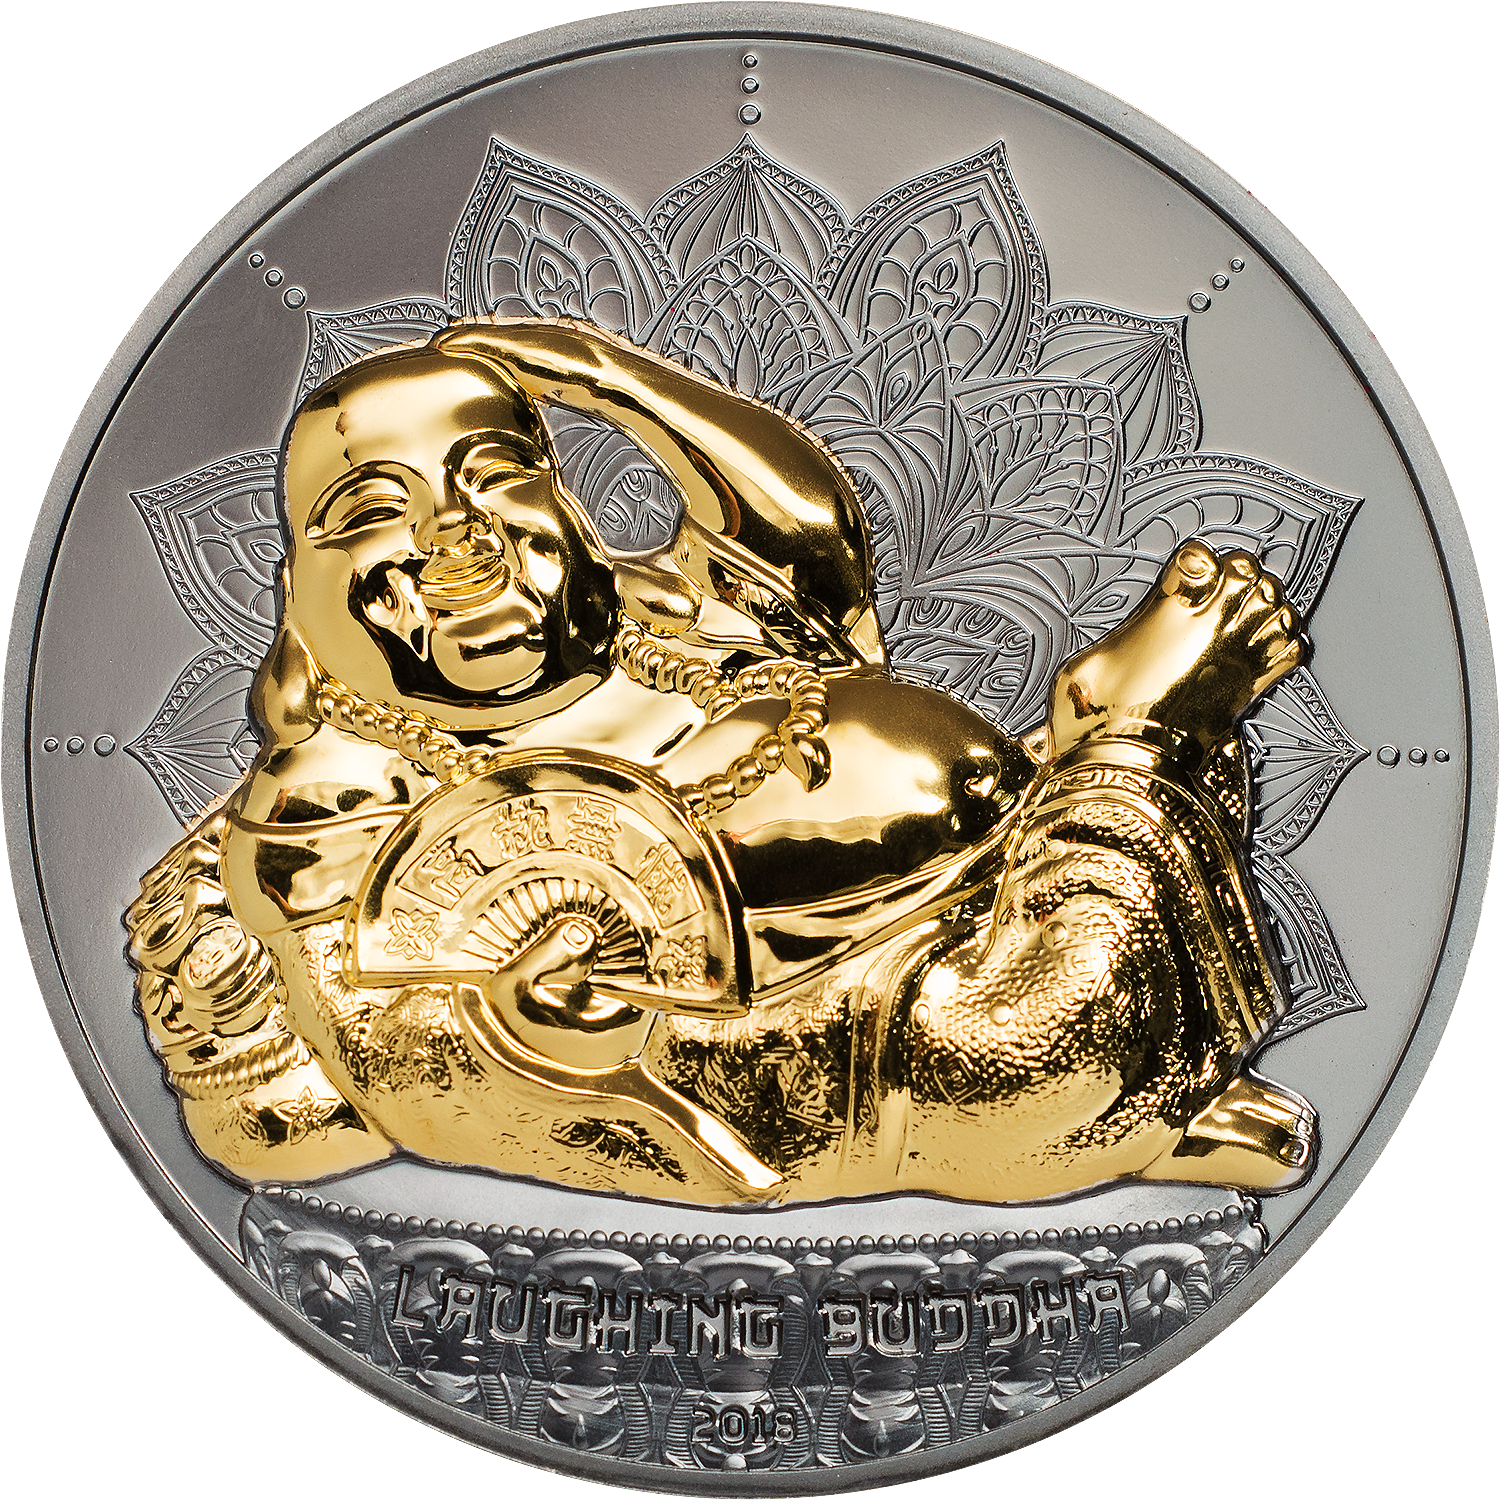 laughing buddha buddai smartminting happy buddha with high relief cit coin invest black proof gilded coin